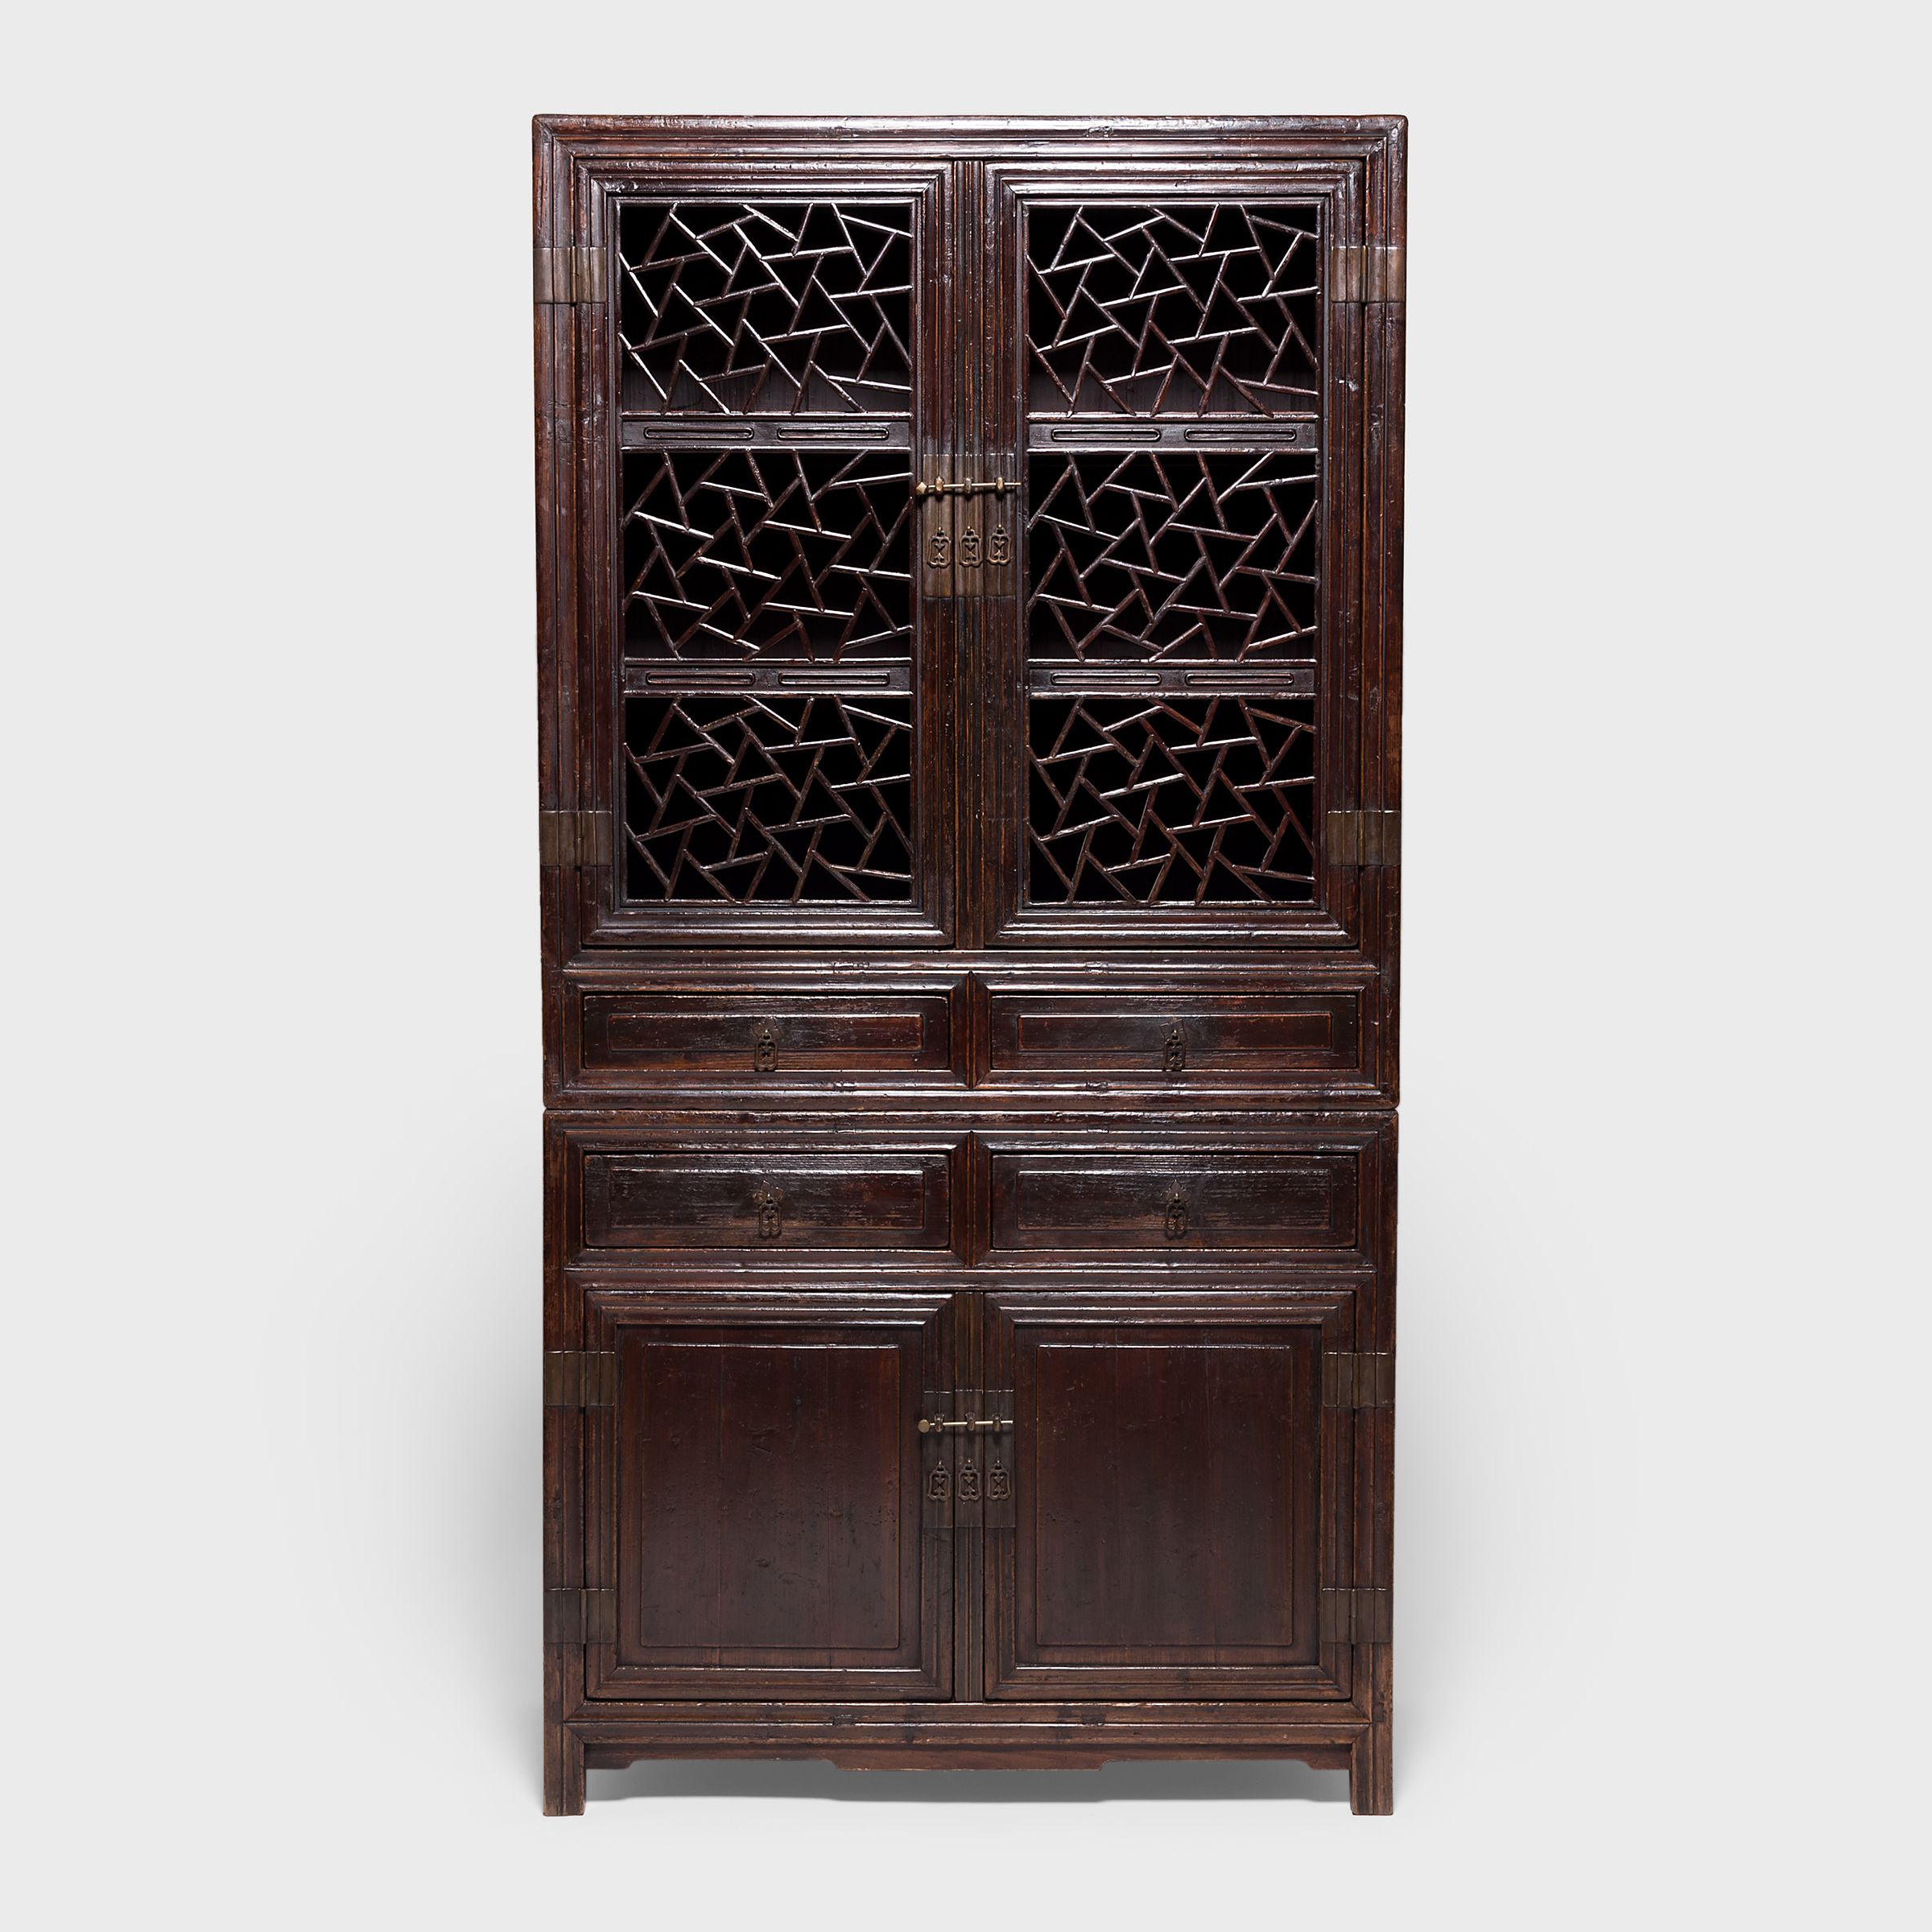 Chinese Tall Cabinets, Asian Wood Cabinets, Chinese Antique